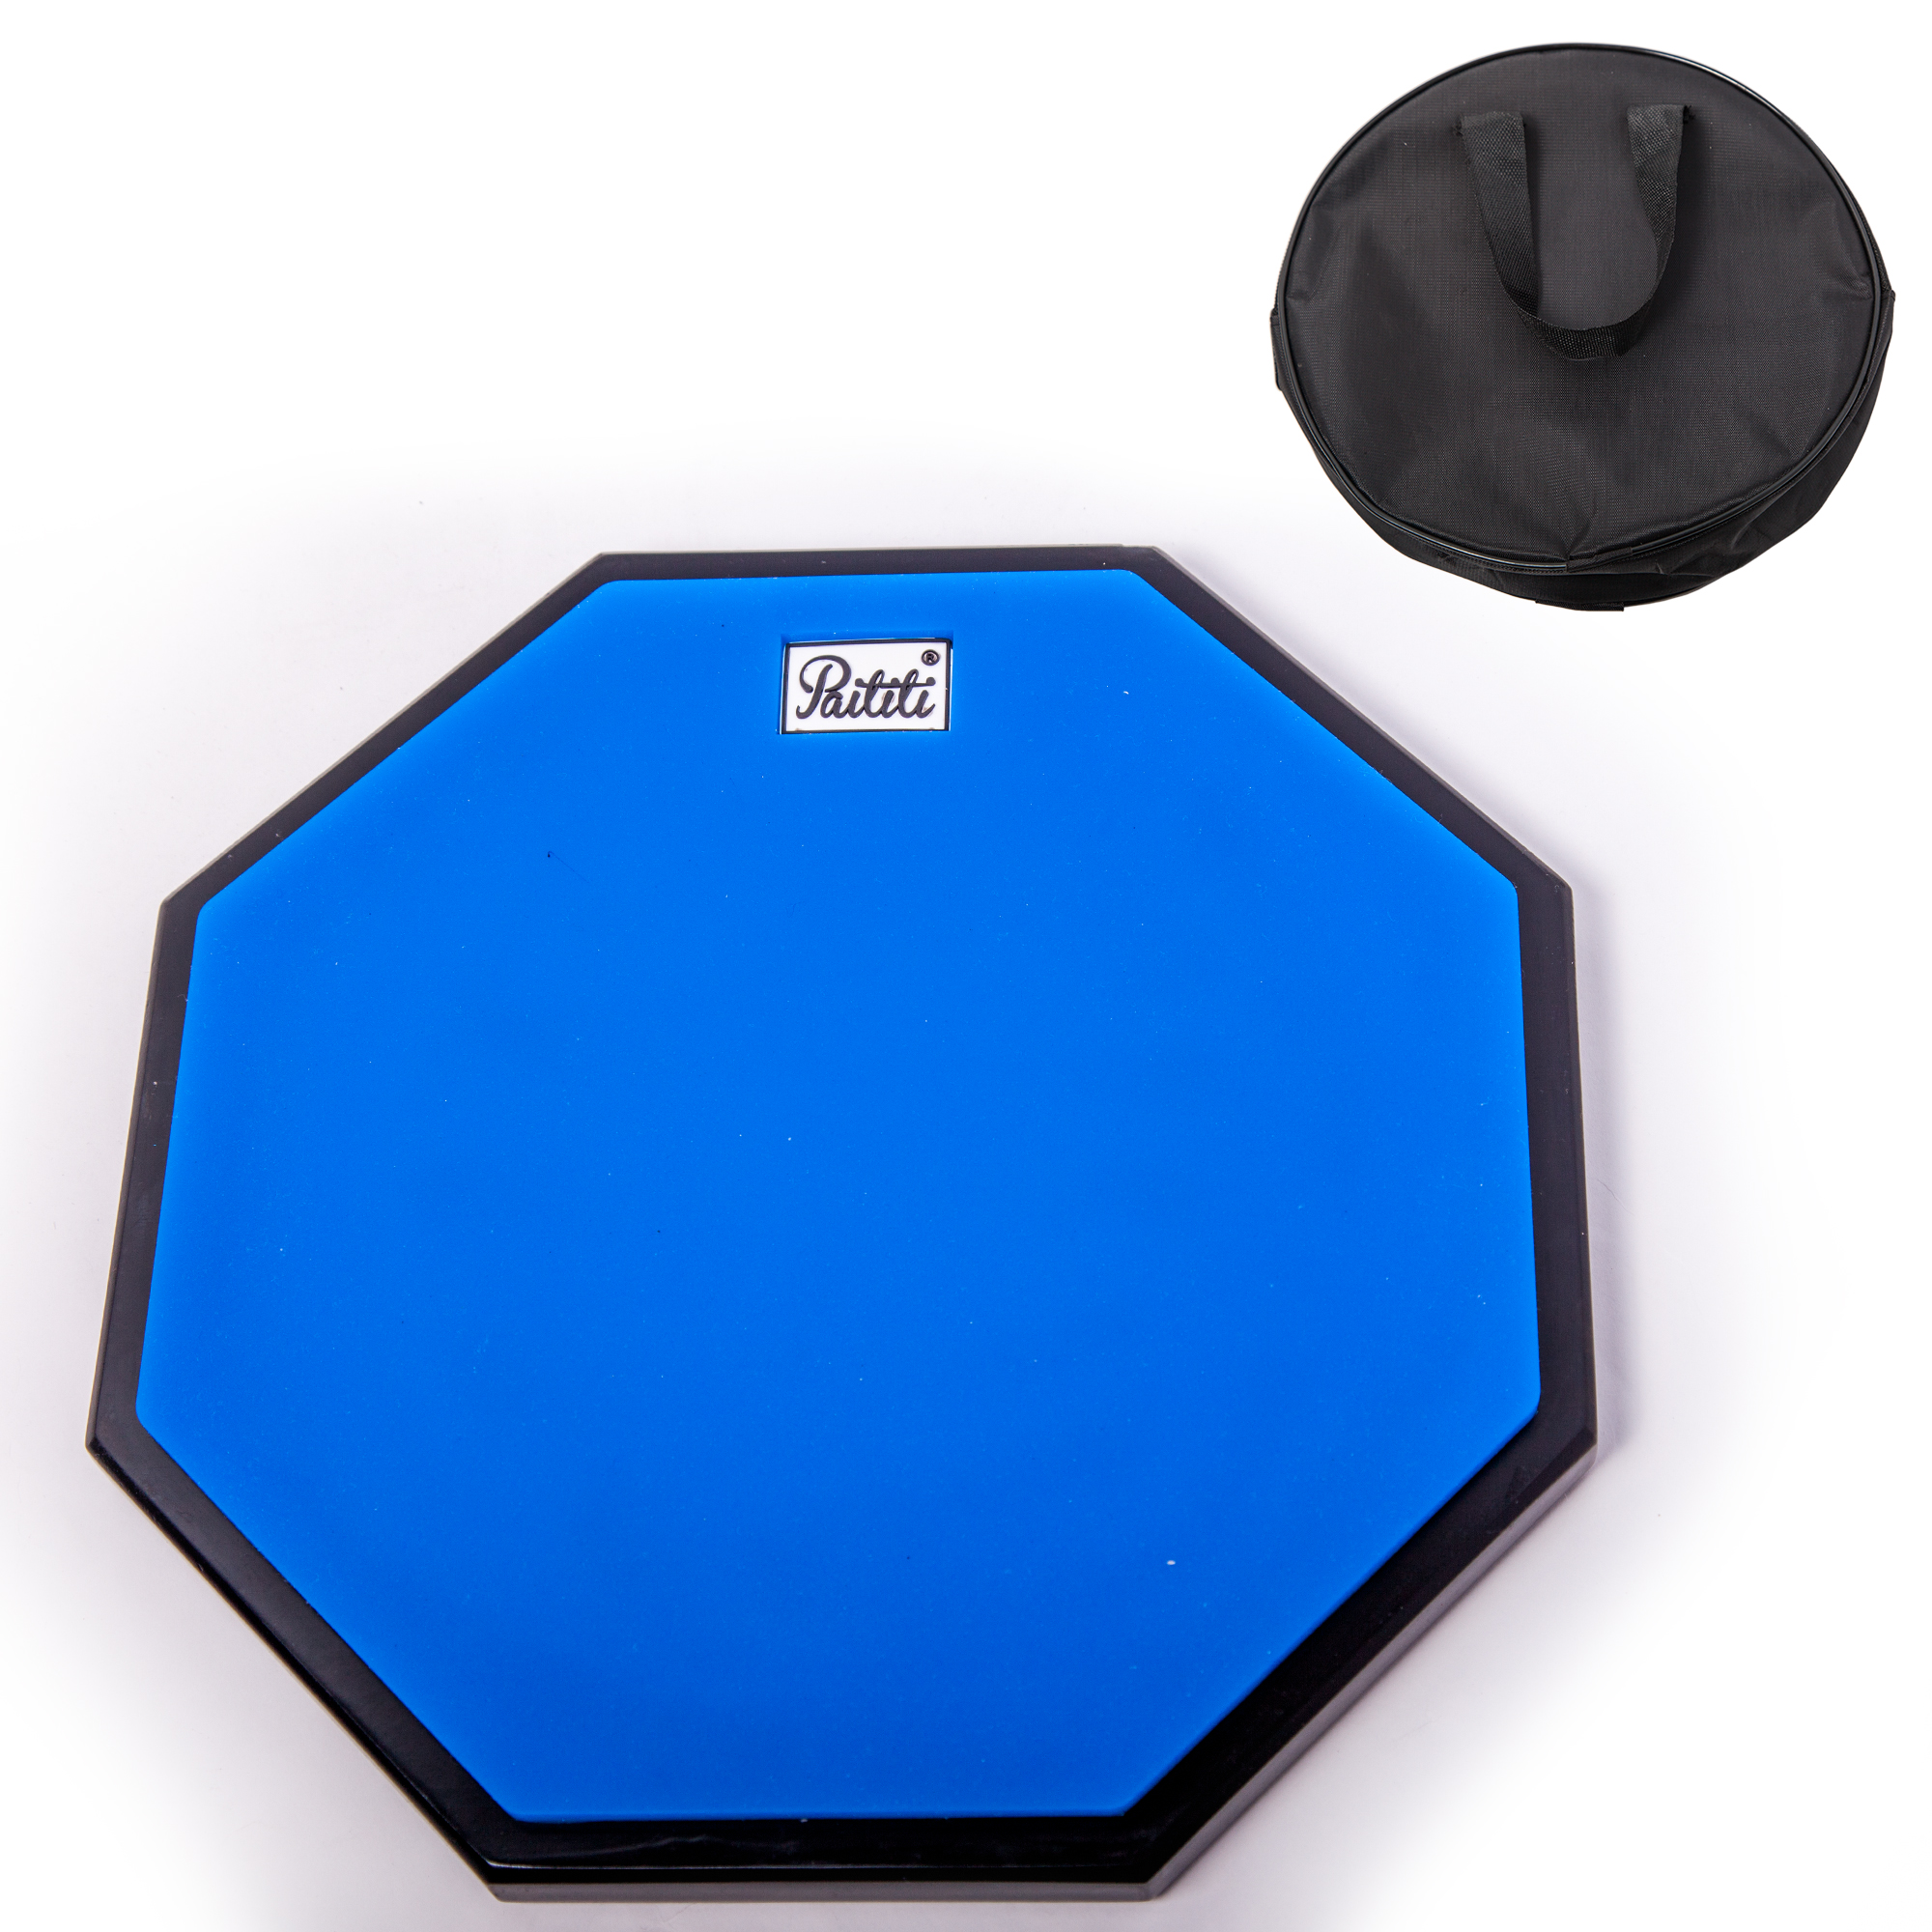 PAITITI 12 Inch Silent Portable Practice Drum Pad Octagonal Shape with Carrying Bag Blue Color - Bonus 7A Drumsticks